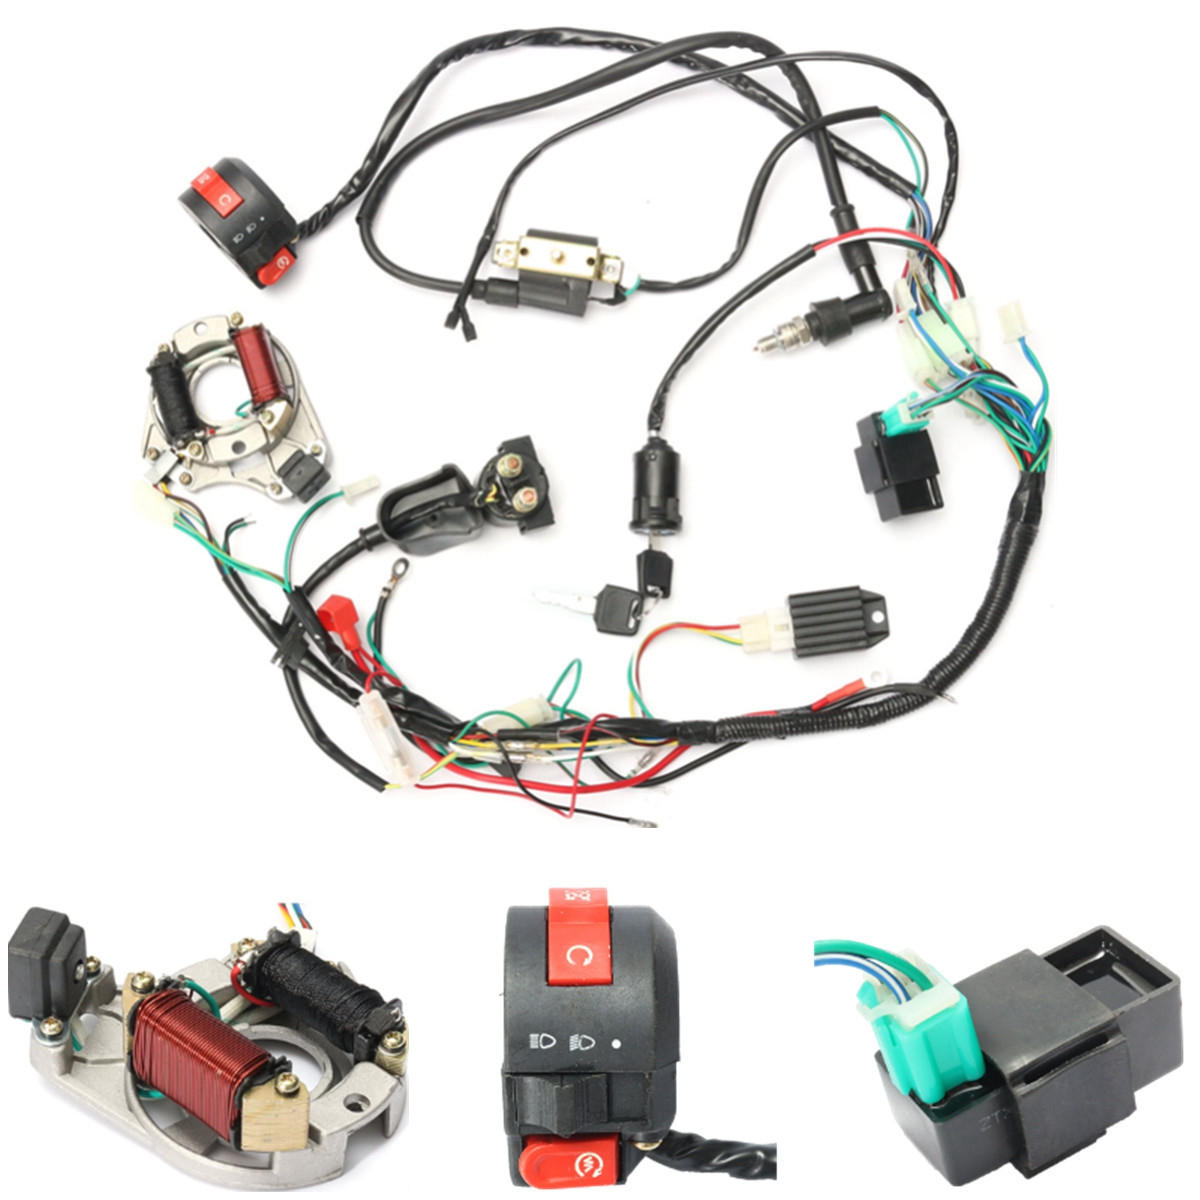 hight resolution of 50cc 70cc 90cc 110cc cdi wire harness assembly wiring kit atv loncin 110cc wiring harness 110cc wiring harness